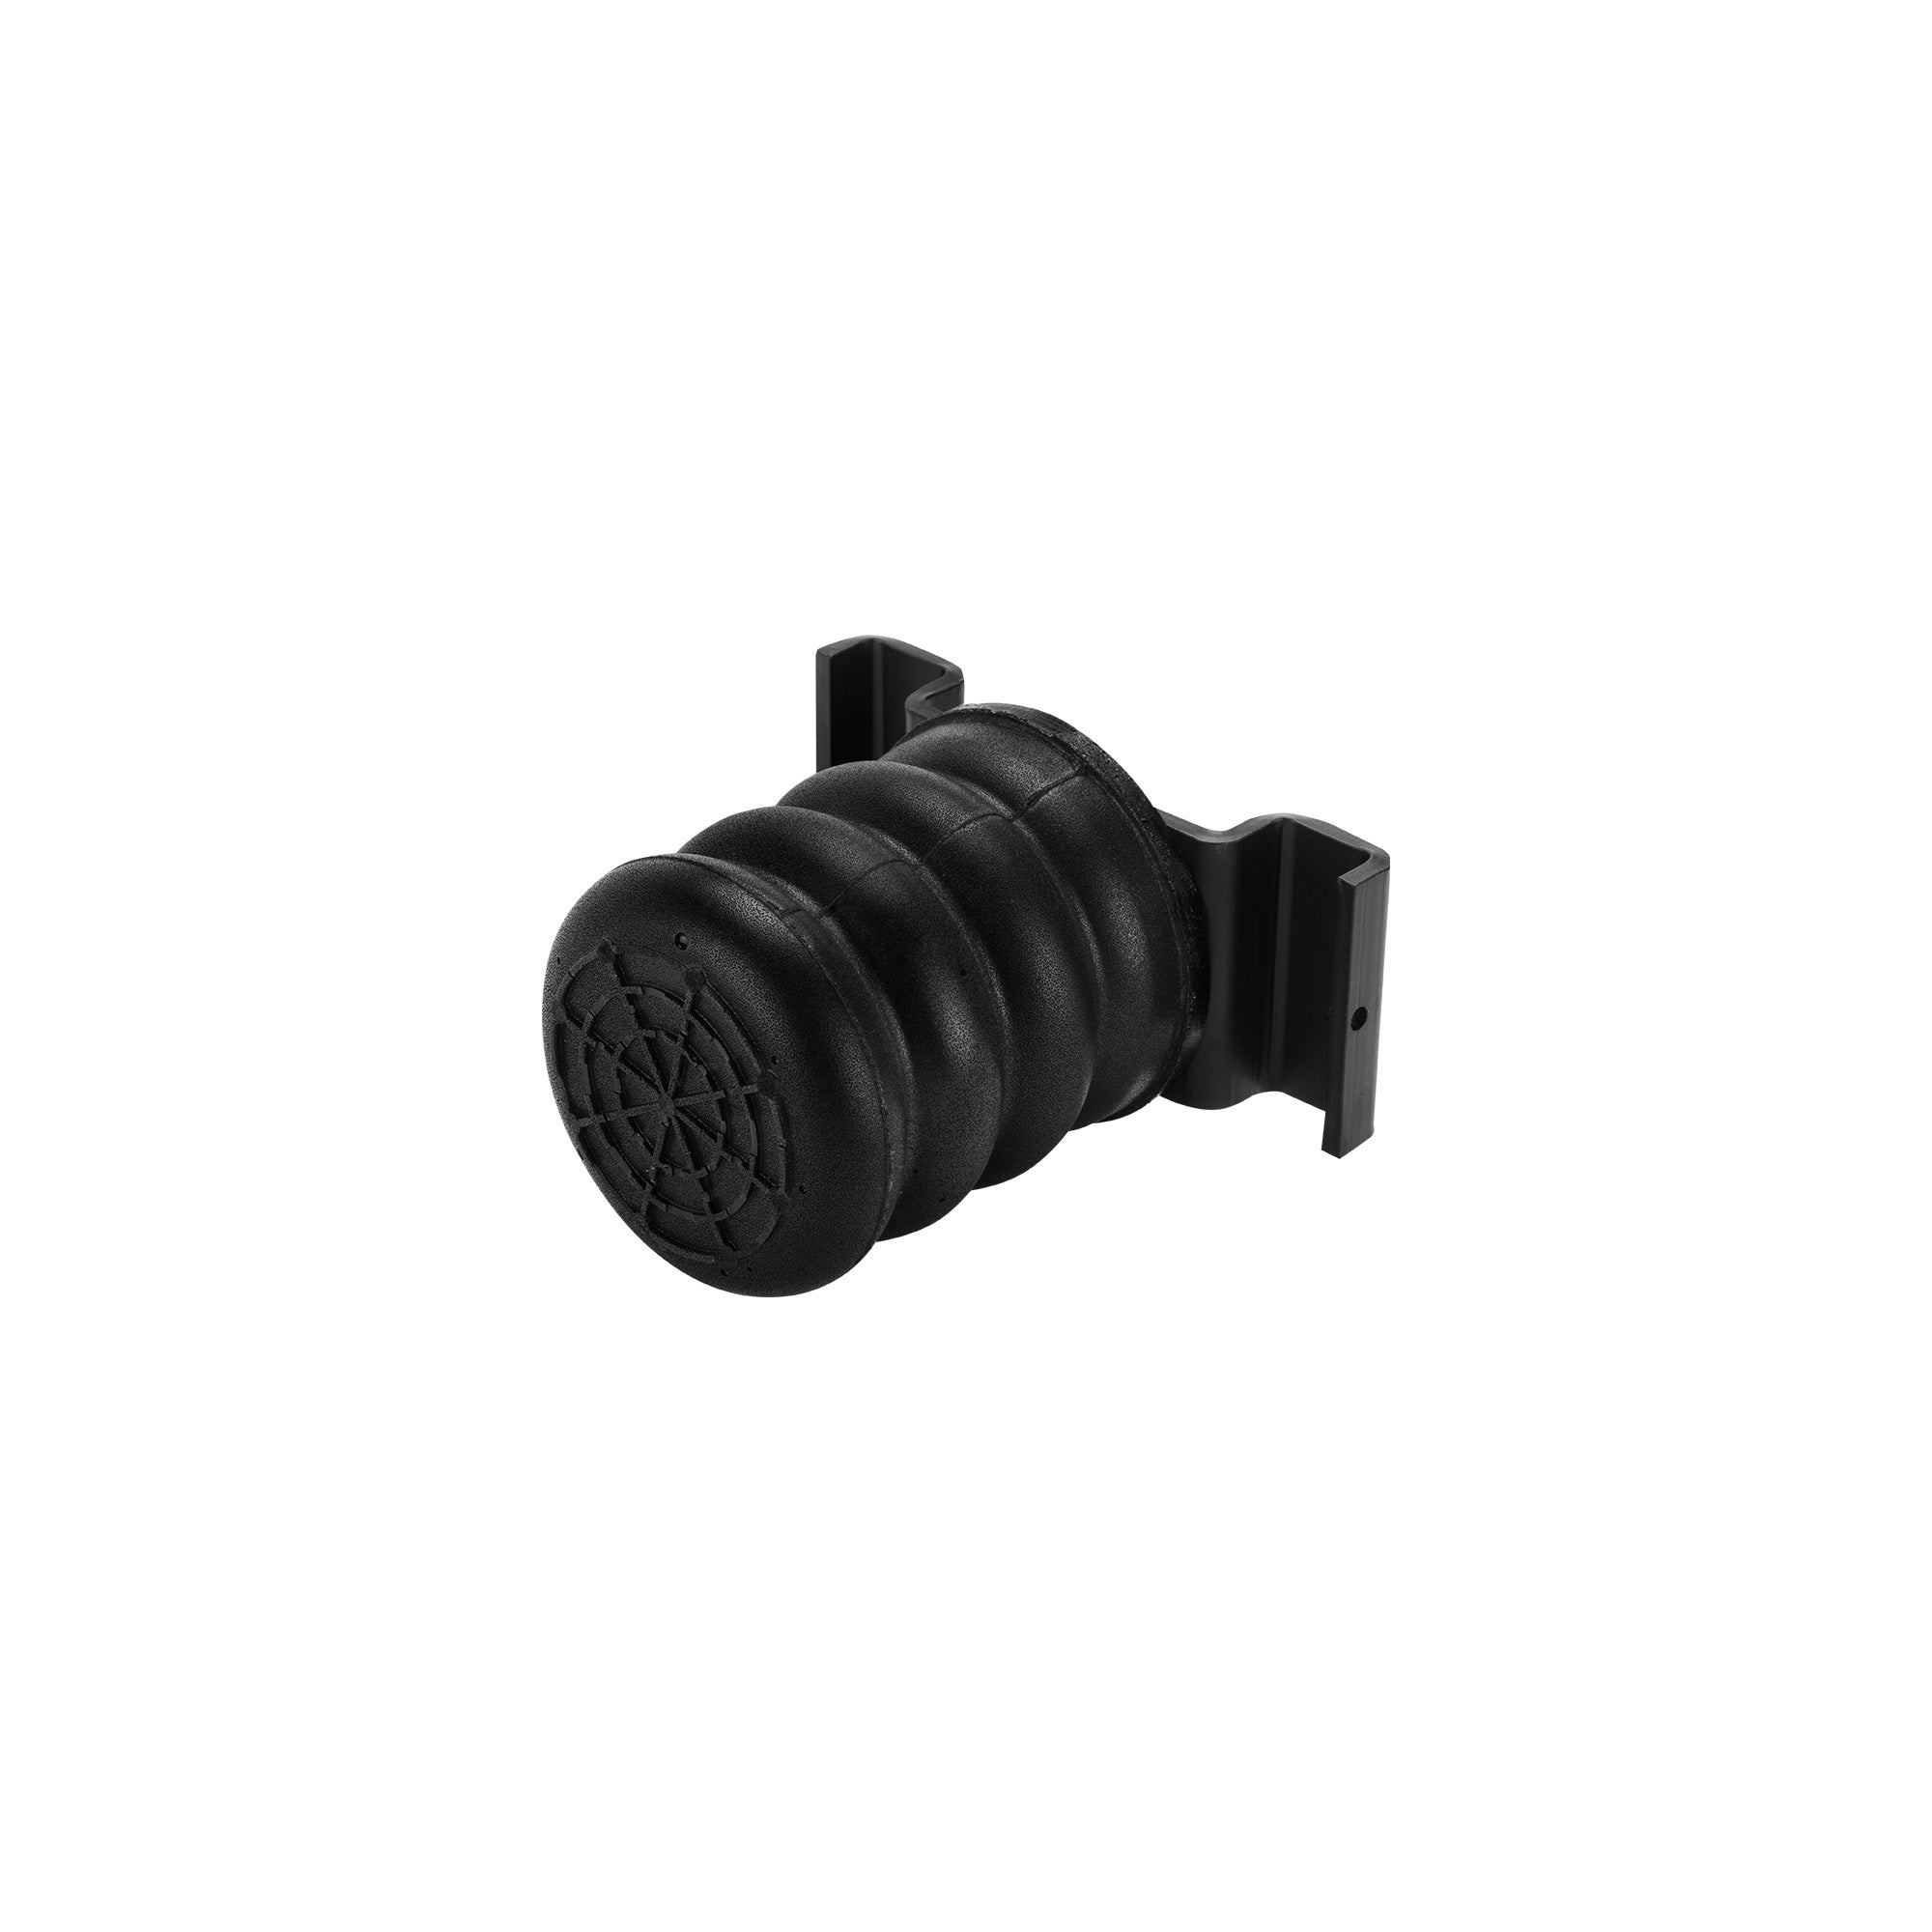 Super Springs 2016-2020 Toyota Tacoma Nissan Frontier SumoSprings Rear Air Helper Spring SSR-612-47